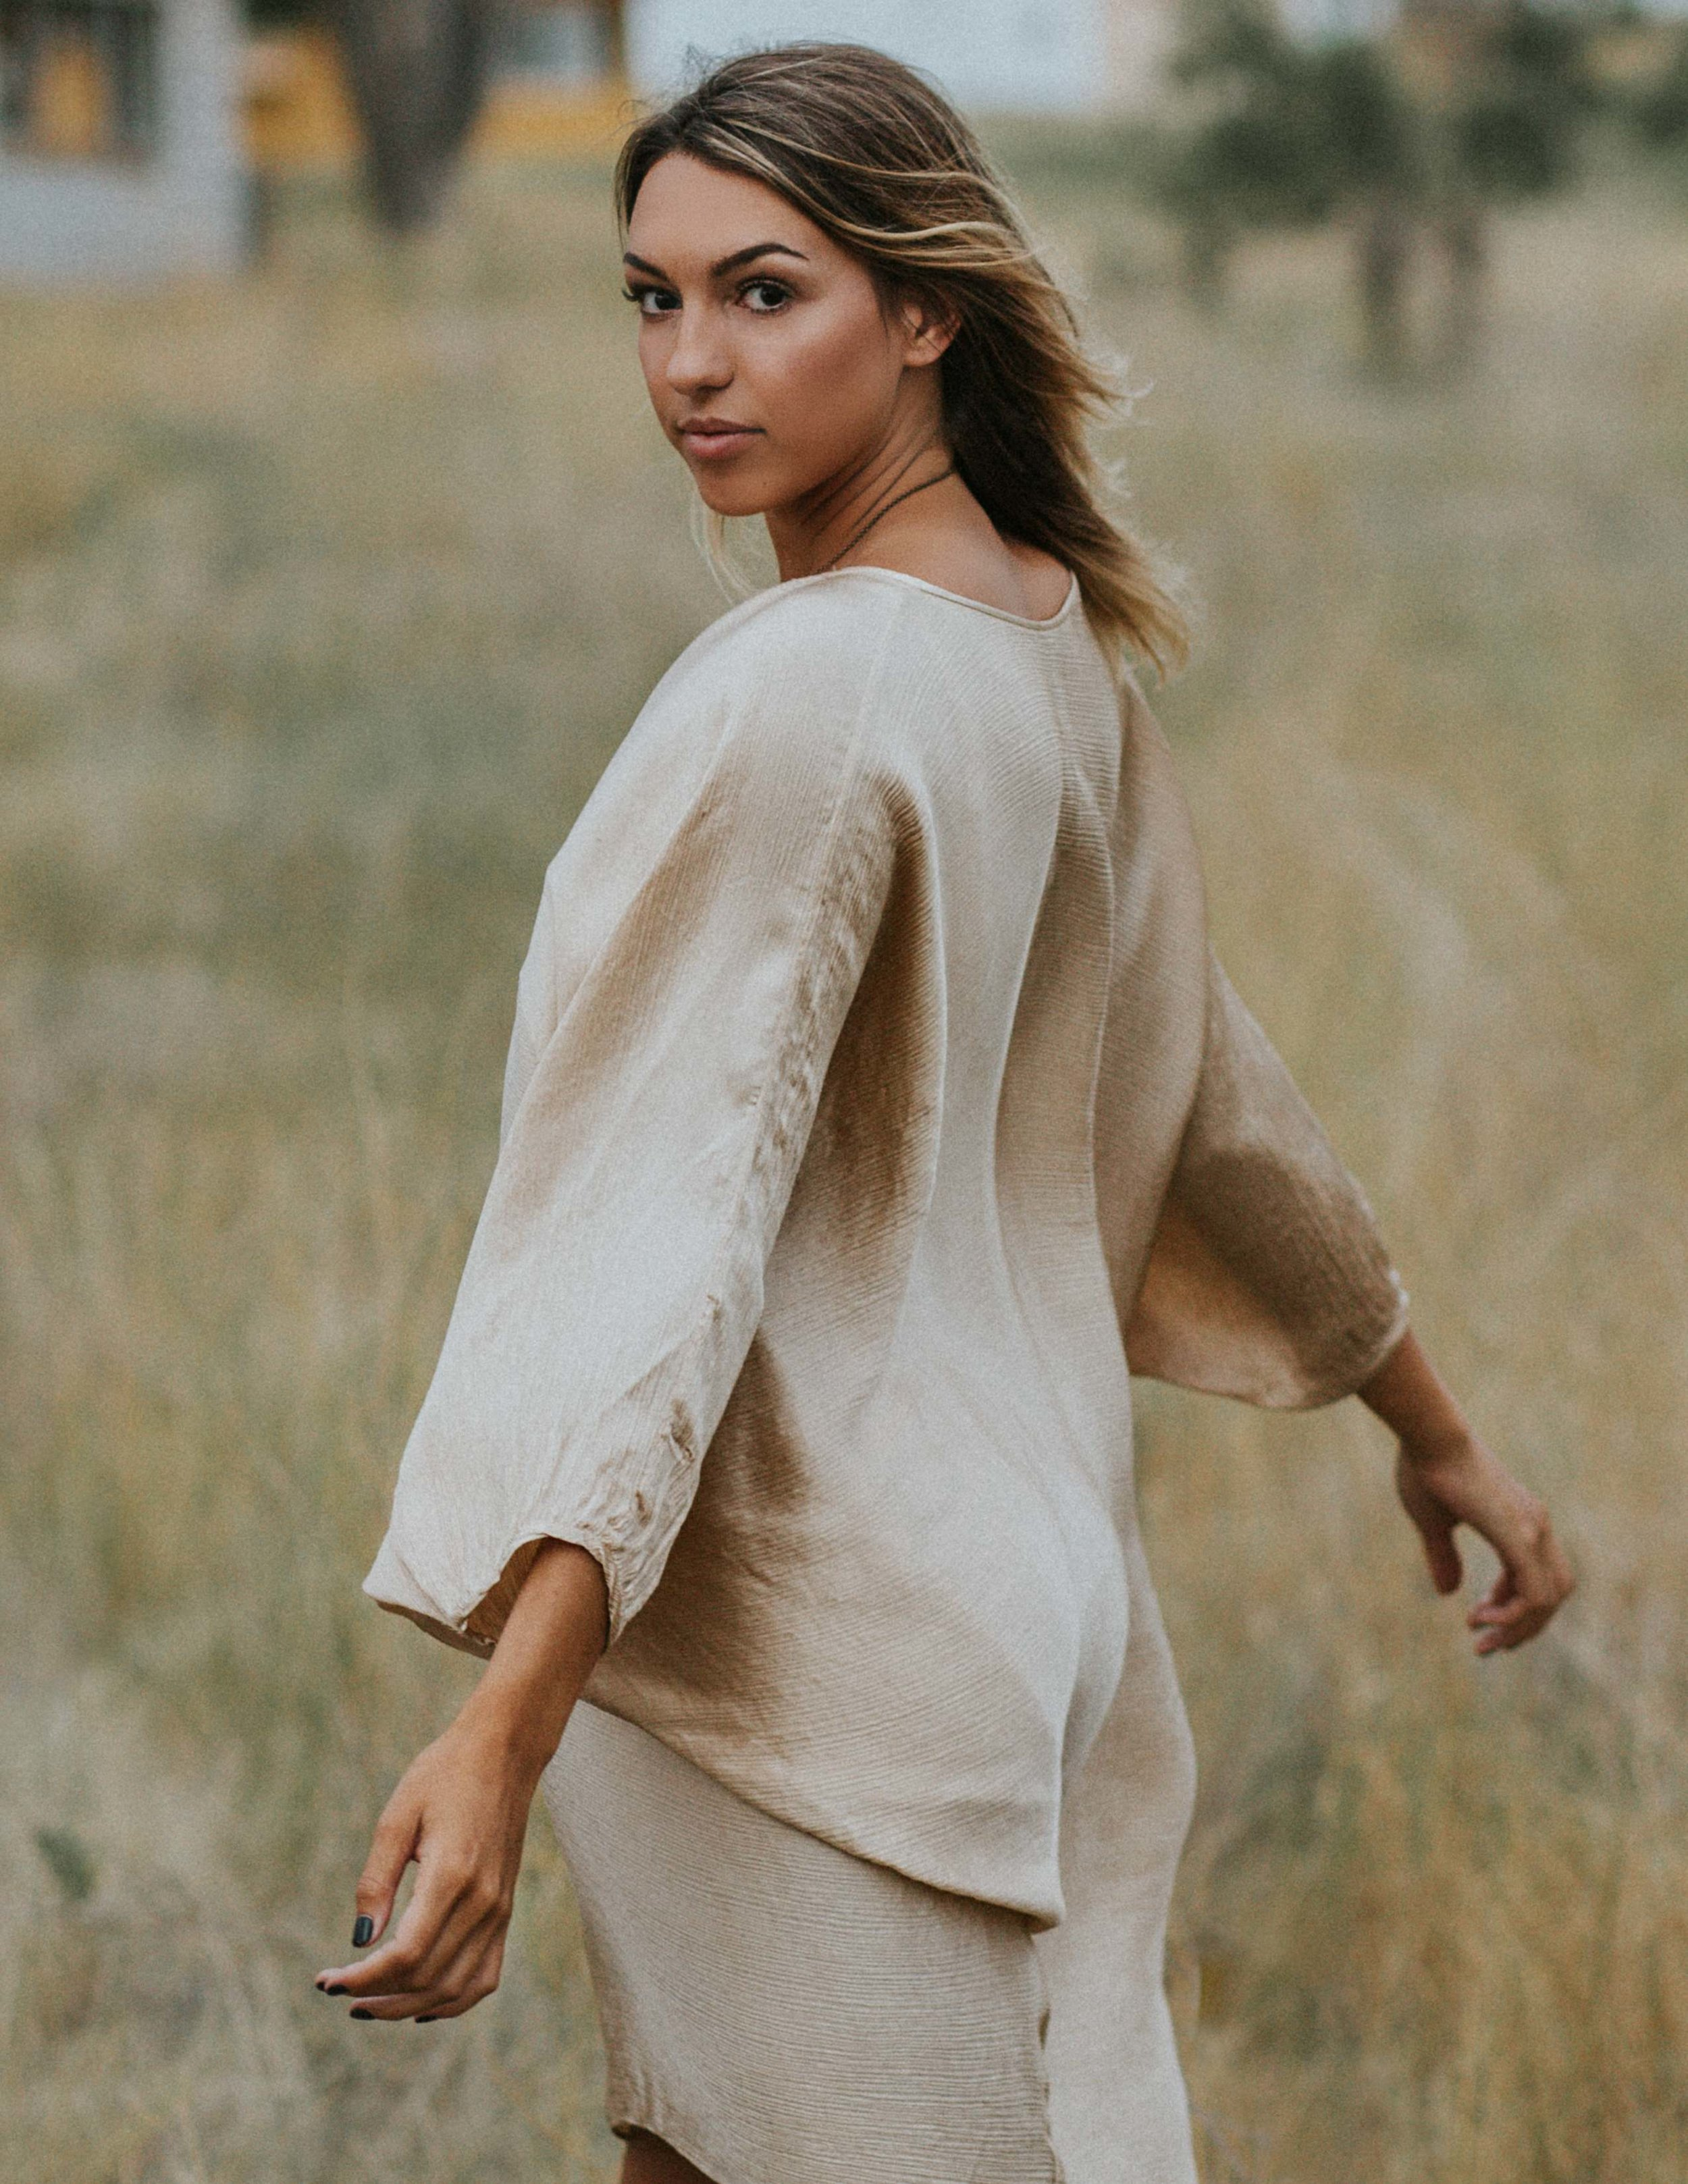 Florum fashion Magzine - ethical green clothing dresses shopping in Denver Colorado - Goldyn - Sacred Rites Jewelry - Ladd Forde - Hannah Moon